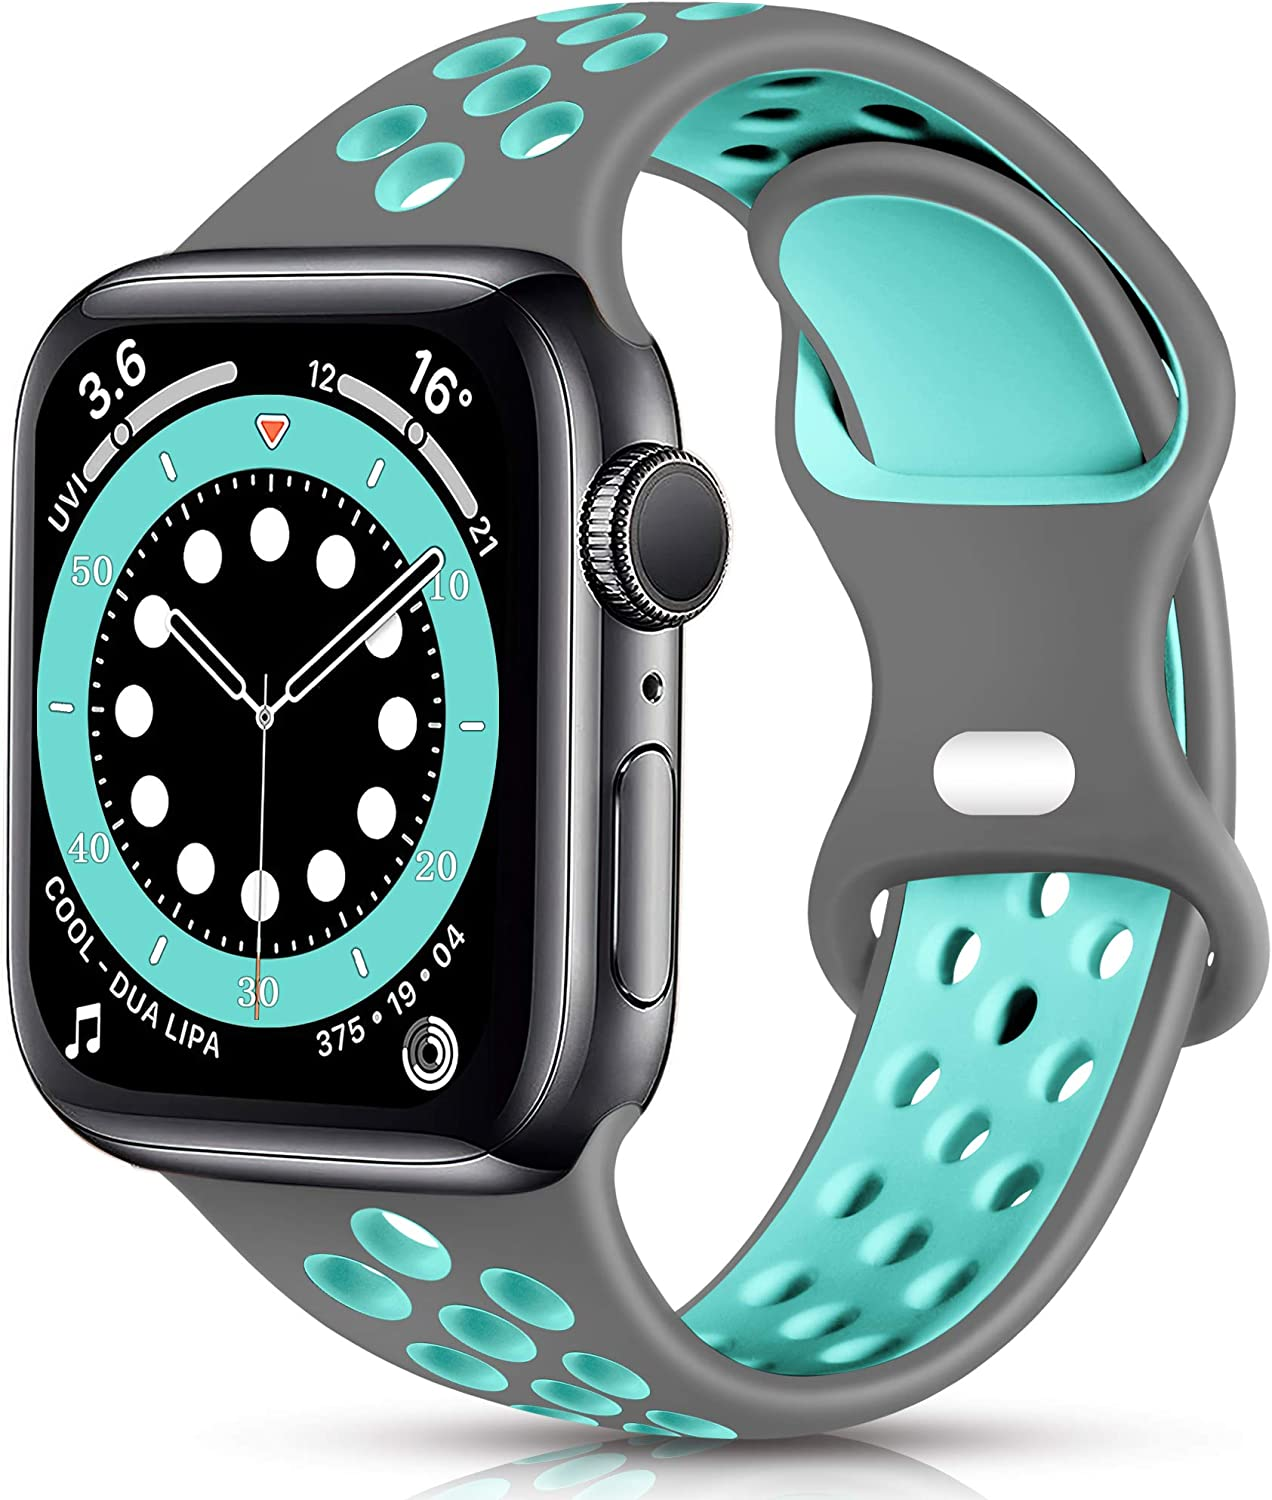 Sport Band Compatible with Apple Watch 42mm 44mm Women Men, Breathable Silicone Replacement Wristband for iWatch SE Series 1/2/3/4/5/6, Gray/Teal, Small